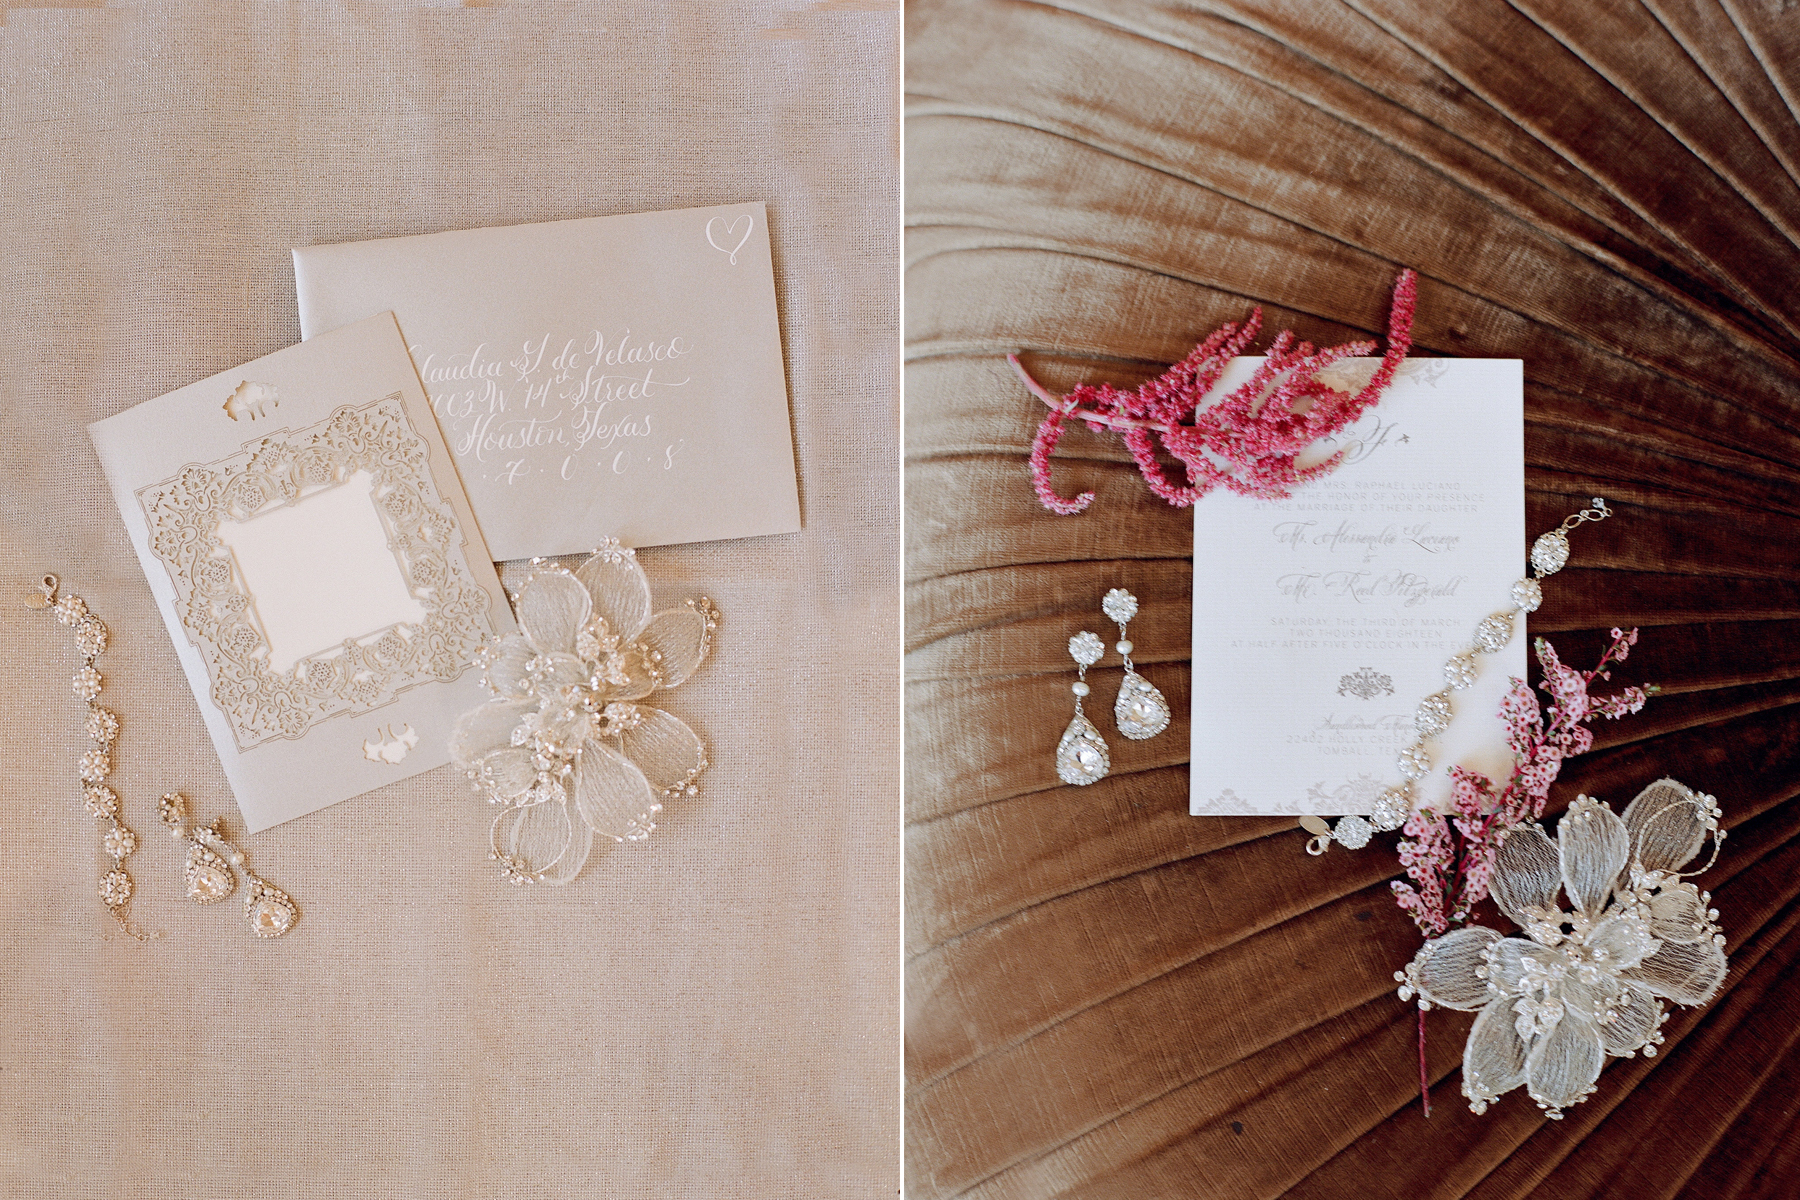 daytoremember.net | Kelly Hornberger Photography | Wedding Stationery | A Day To Remember Houston Wedding Planning and Design